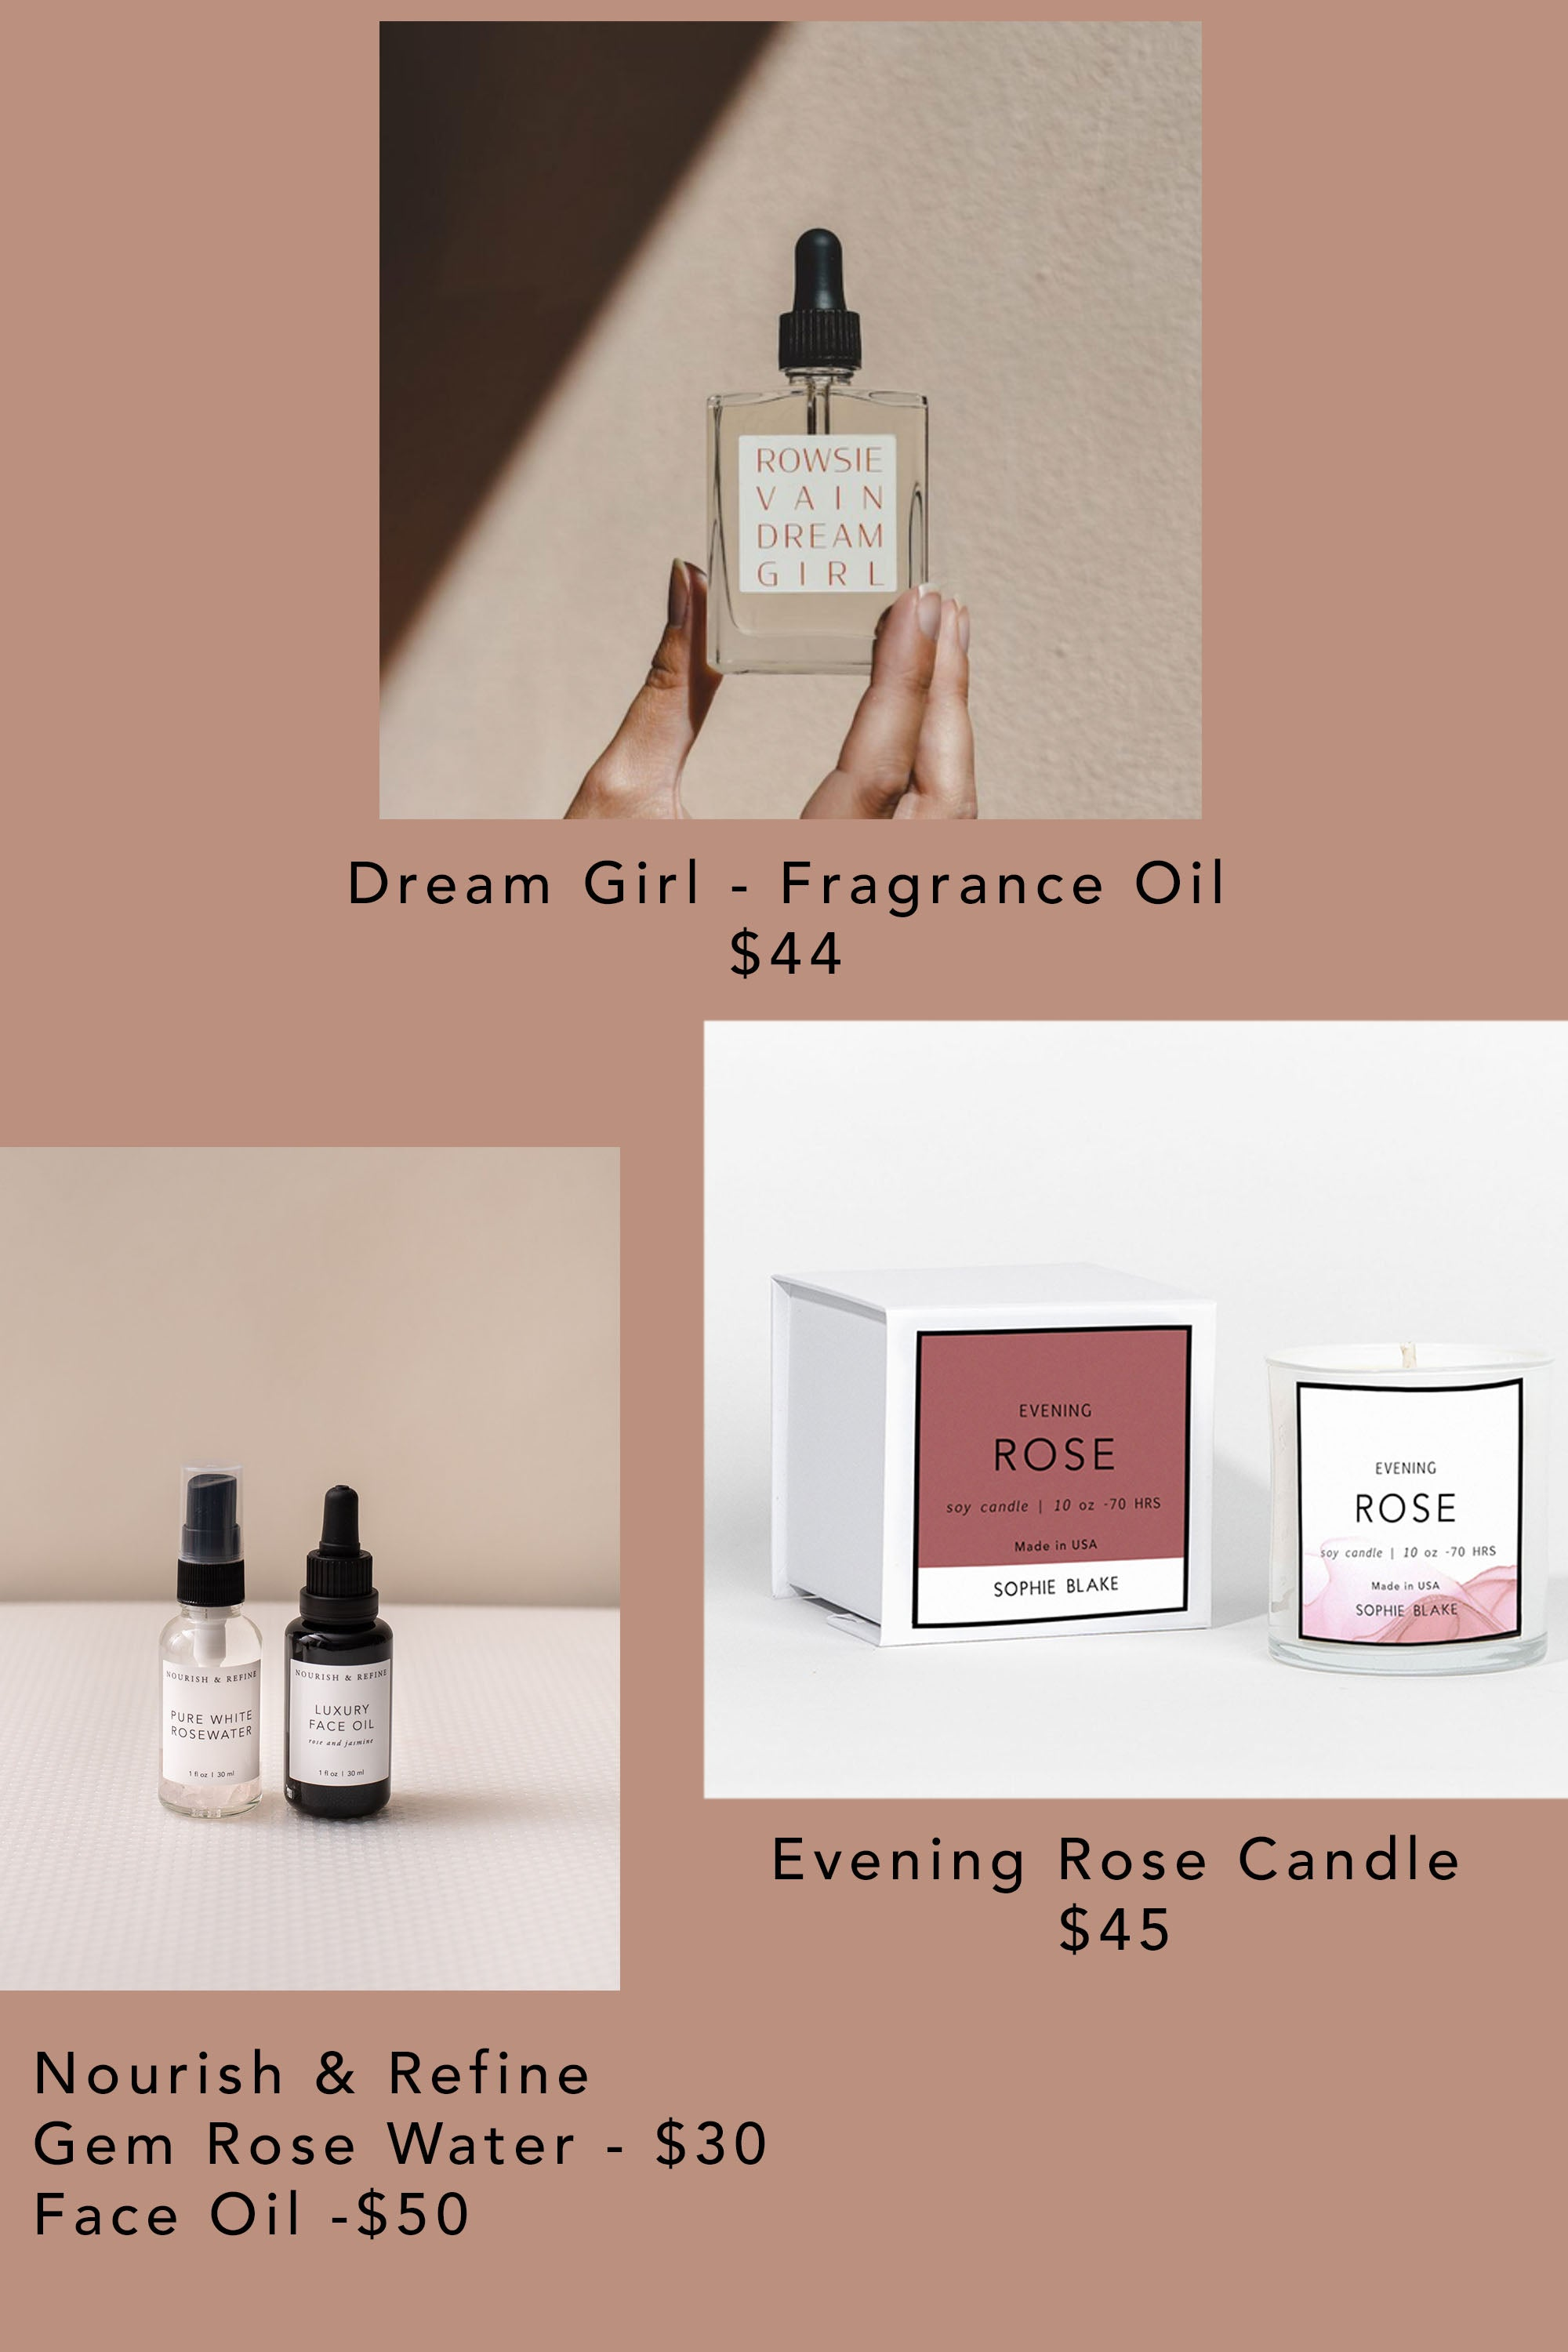 https://sophieblake.com/collections/feminine-delights/products/evening-rose-10-oz-soy-candle